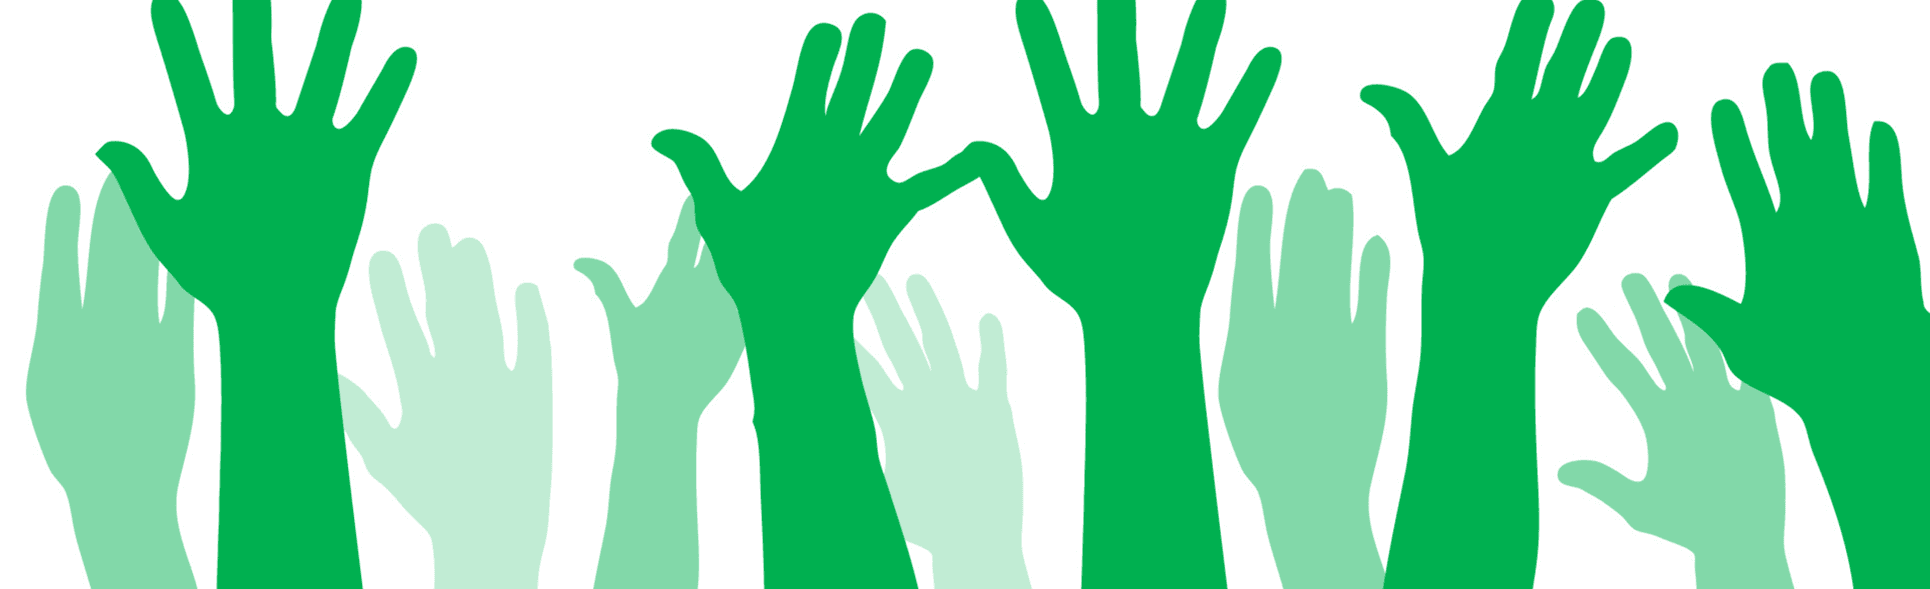 Image of the silhouettes of green hands raised